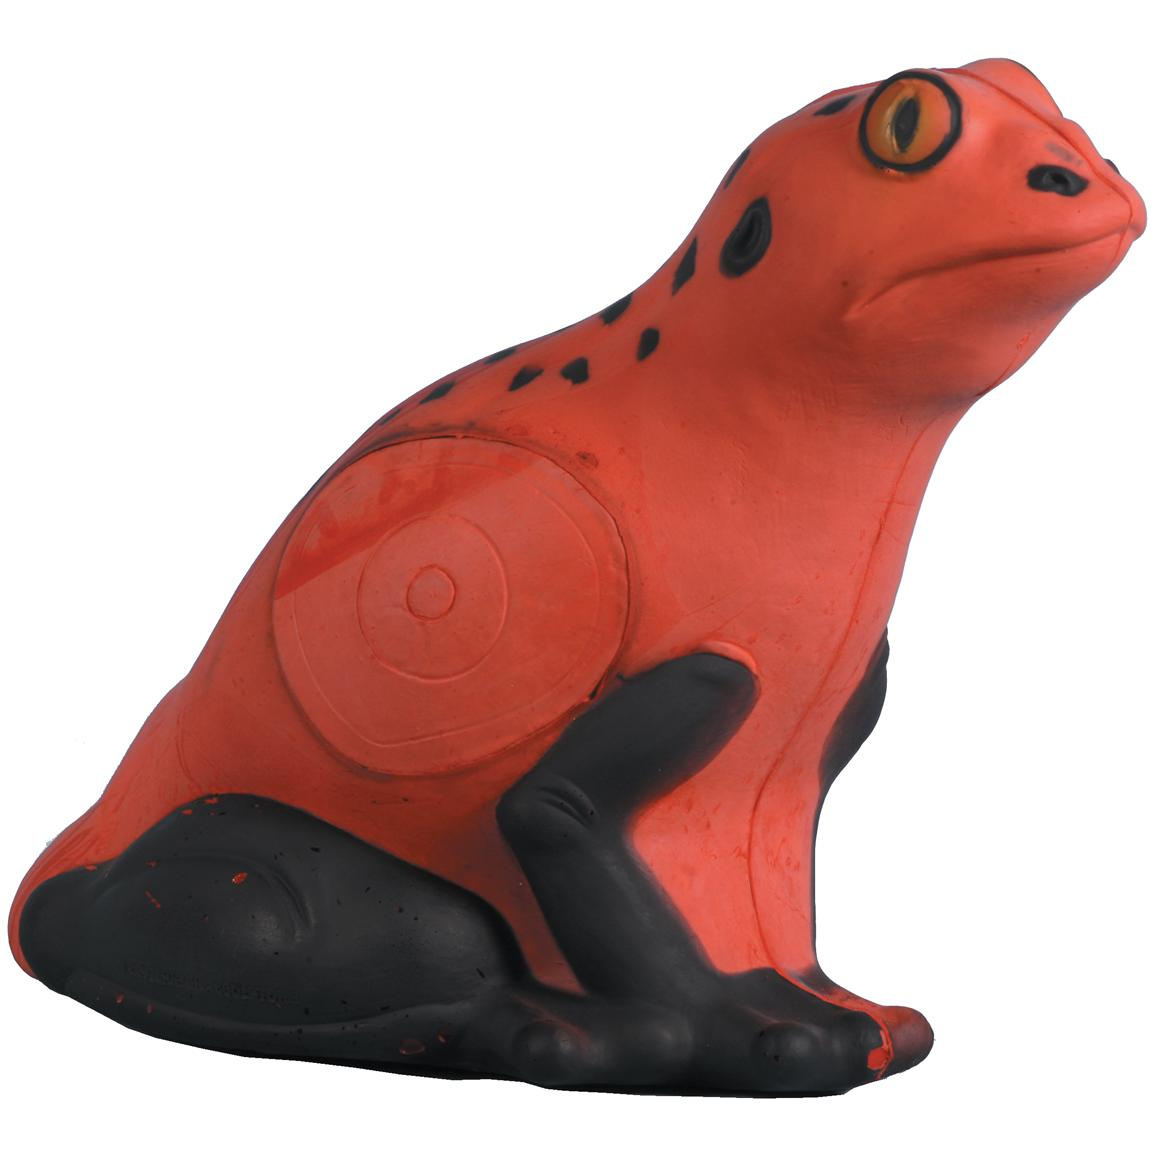 Rinehart® Poisonous Red Frog Targets